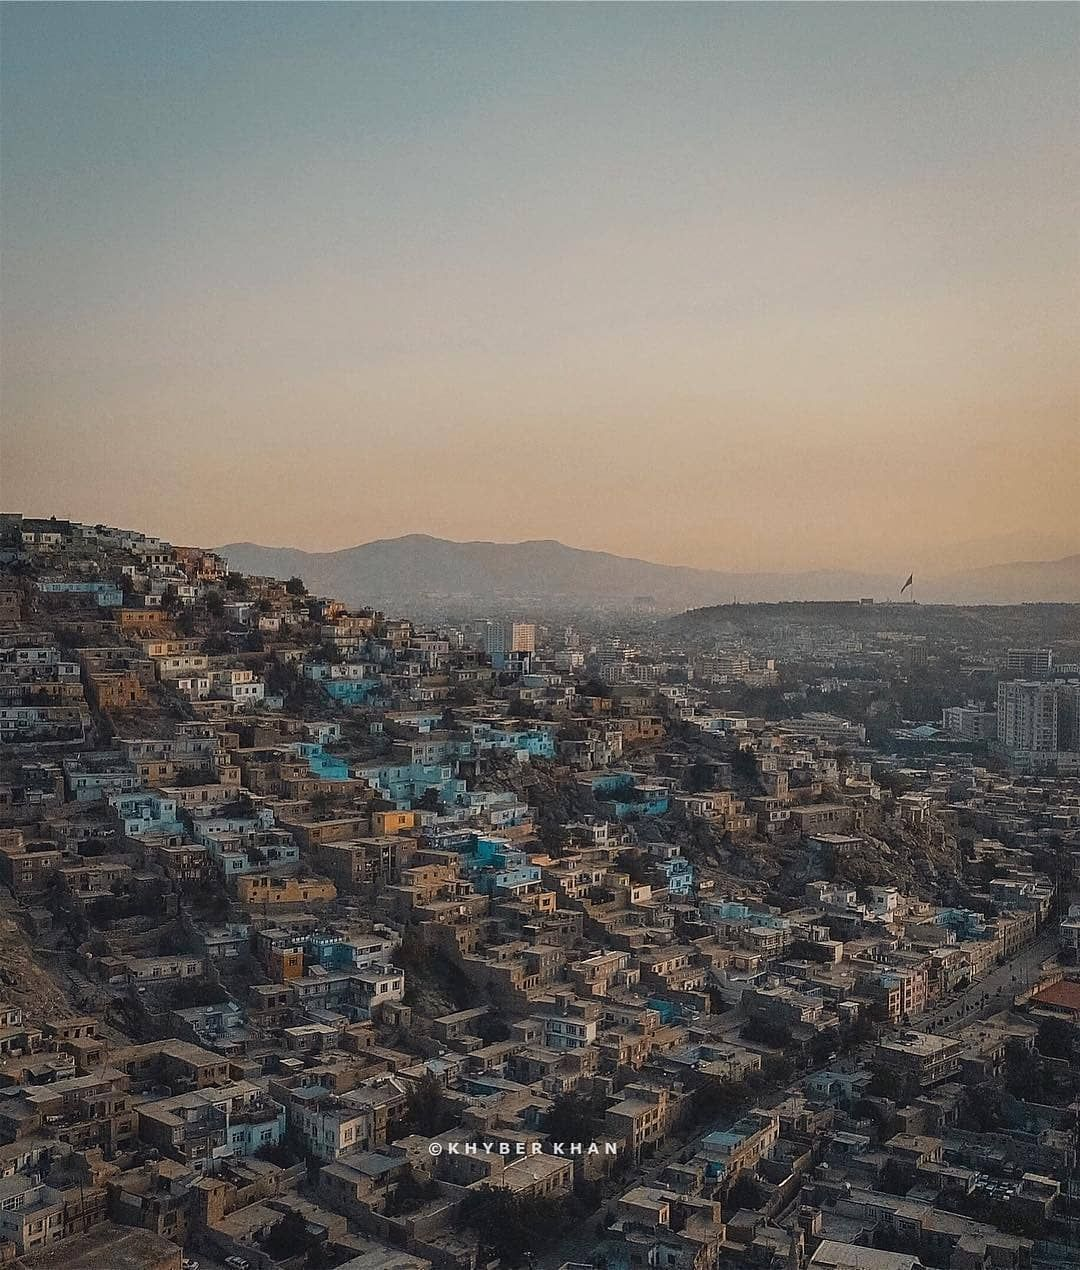 Almost All The Hills Across Kabul City Are Full Of Houses Built By Needy And Lower Income Residents In Recent Years Kabul Municip City Natural Landmarks Photo